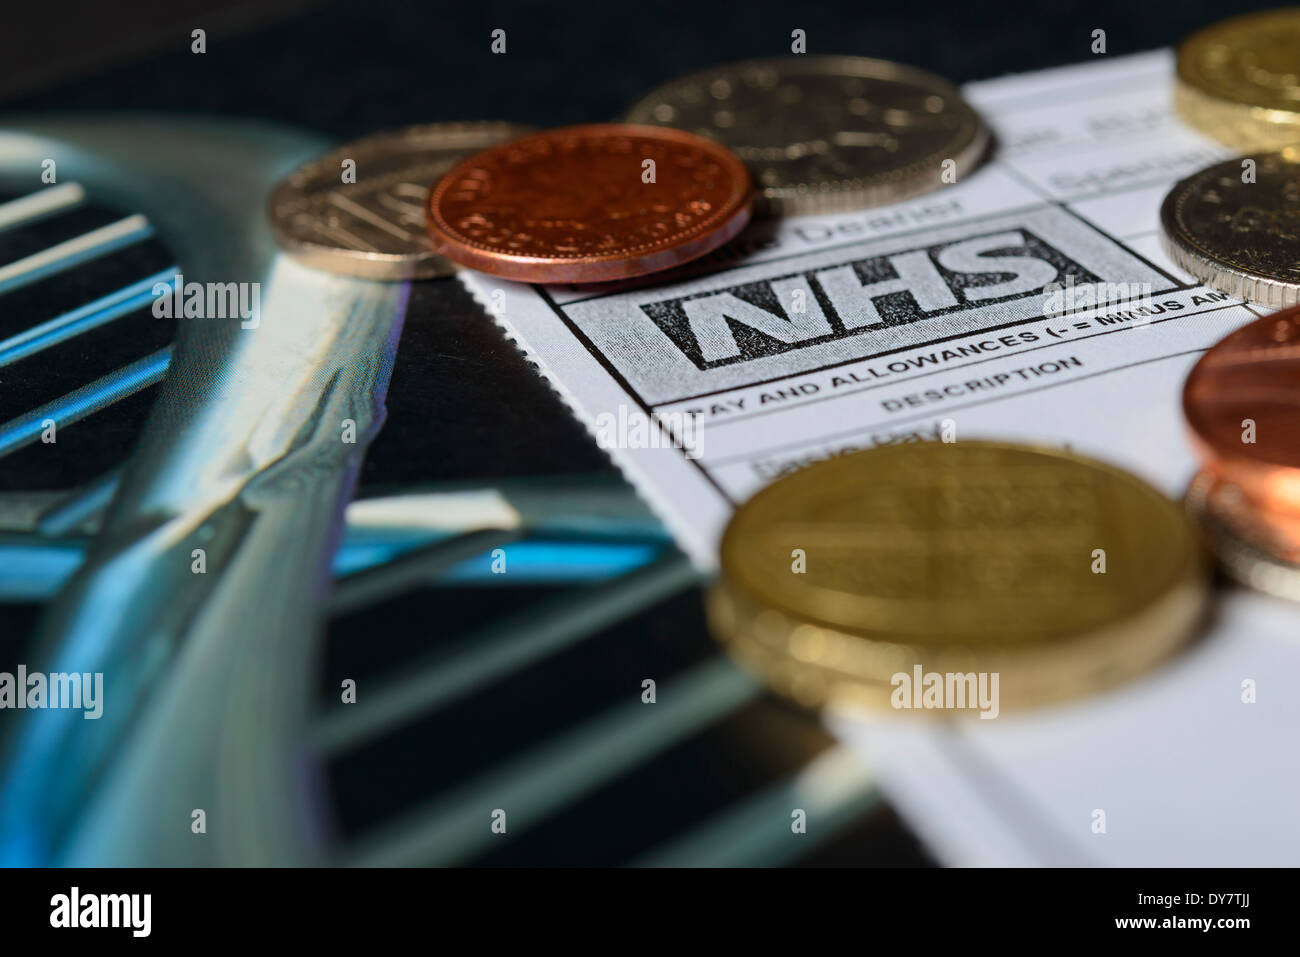 Doctors' Pay - A  Doctor's NHS Payslip with coins on a medical text book. Contract and pay negotiations in the UK concept. - Stock Image